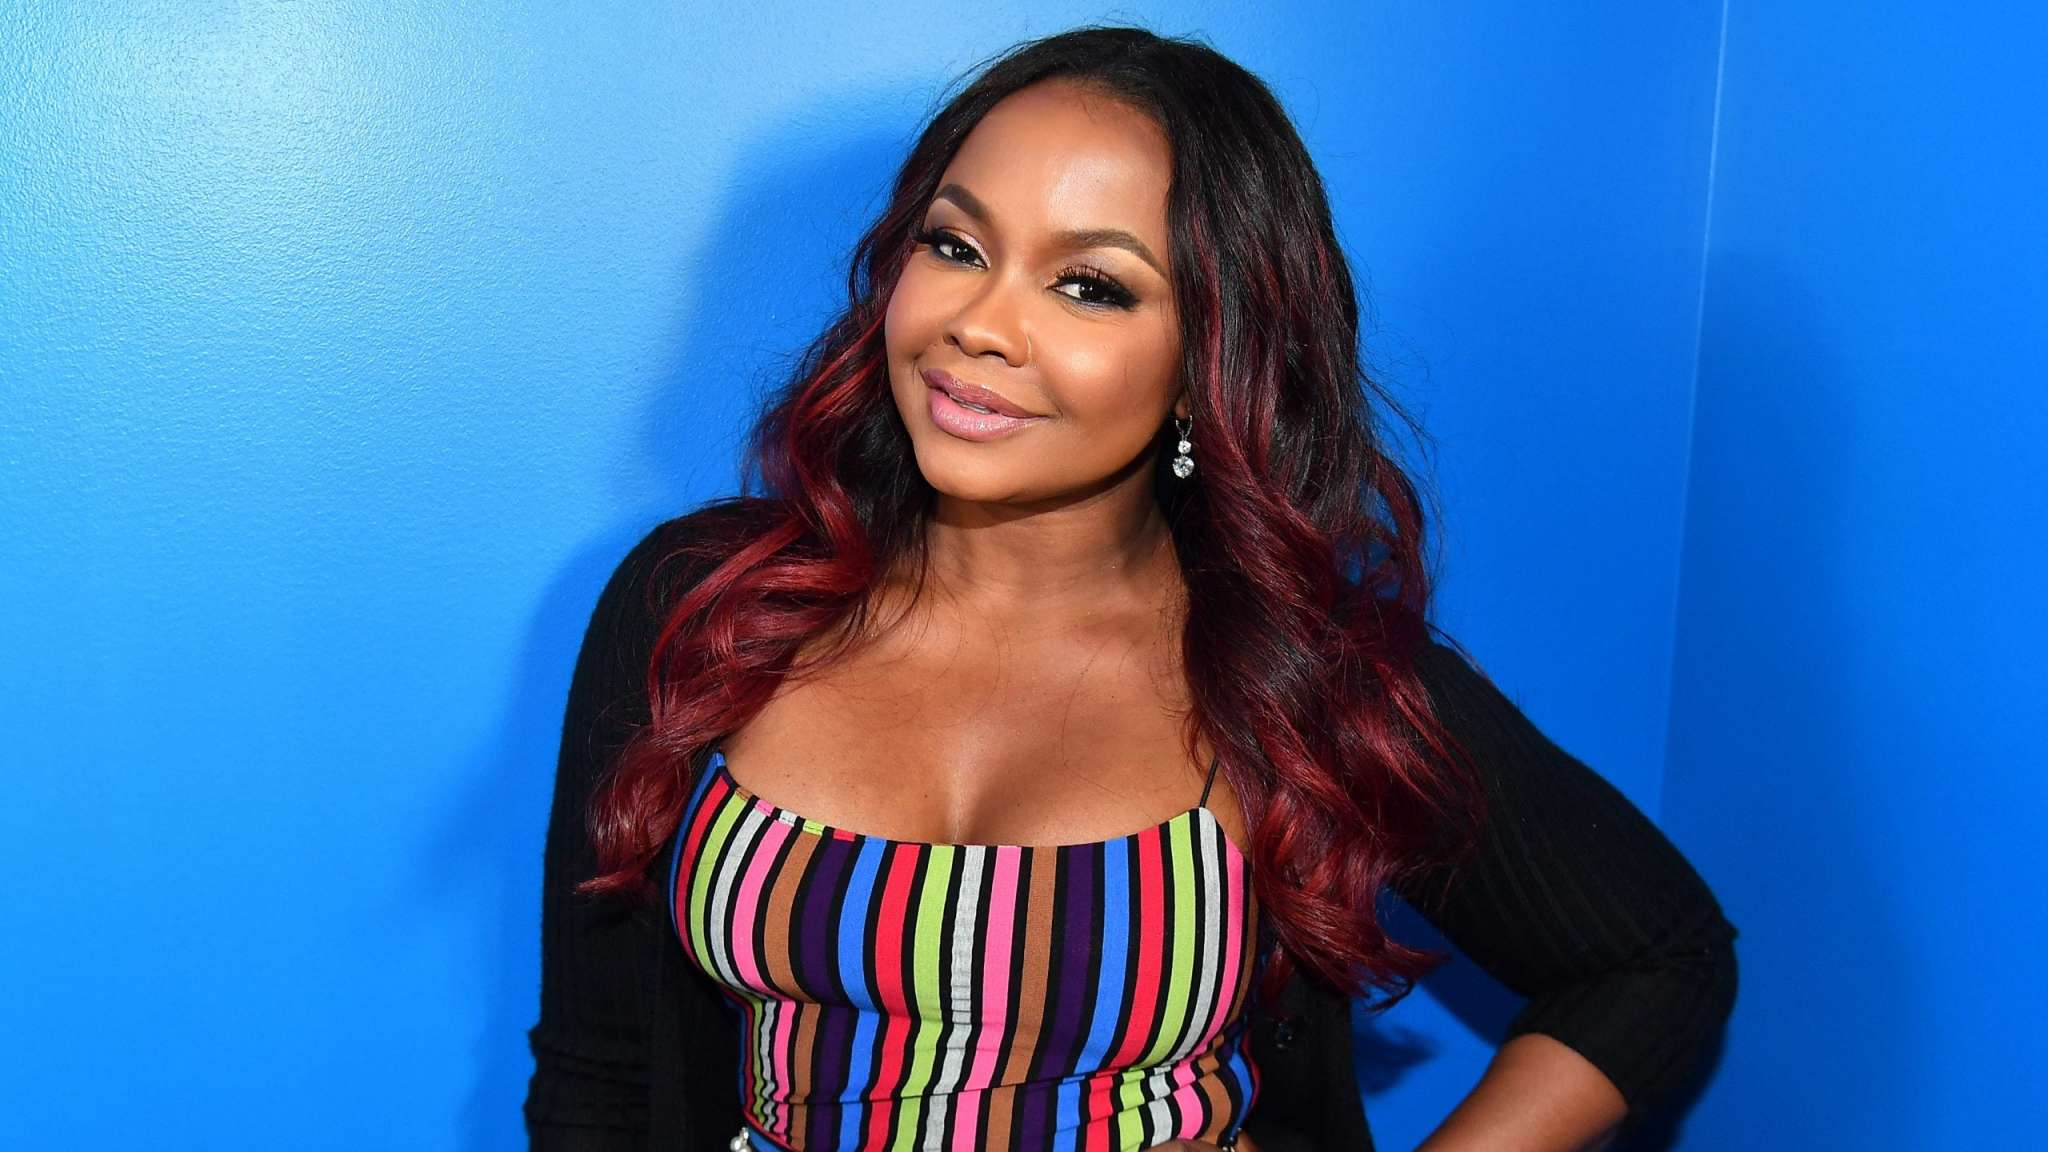 Phaedra Parks Is A Modern Day Poison Ivy In This Dress – Check Out The Post That She Shared On Social Media